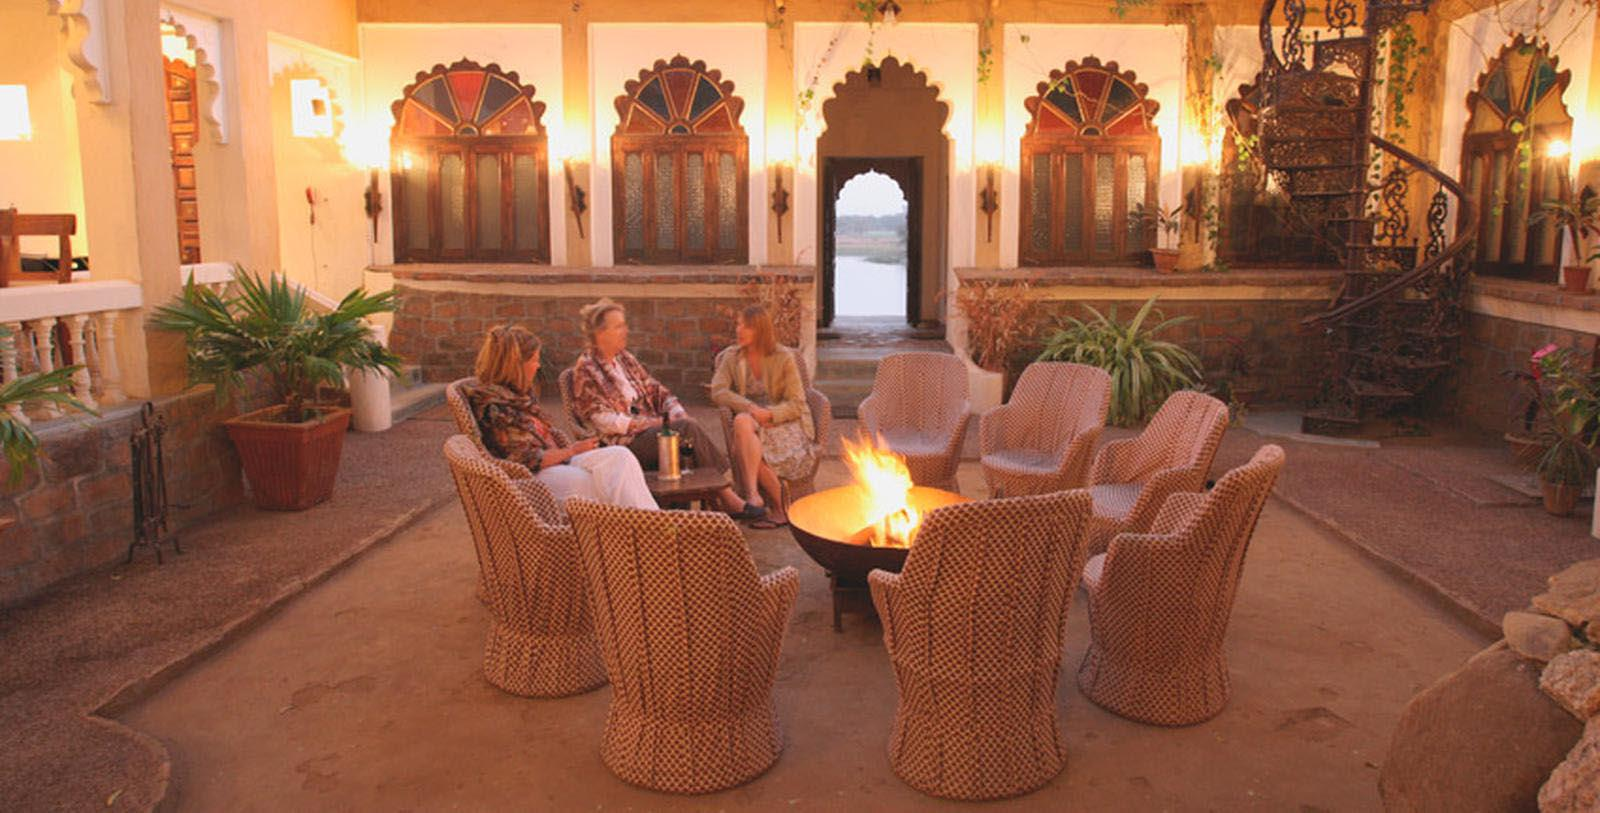 Image of Lounge Area Fort Seengh Sagar, 1670, Member of Historic Hotels Worldwide, in Deogarh, India, Explore